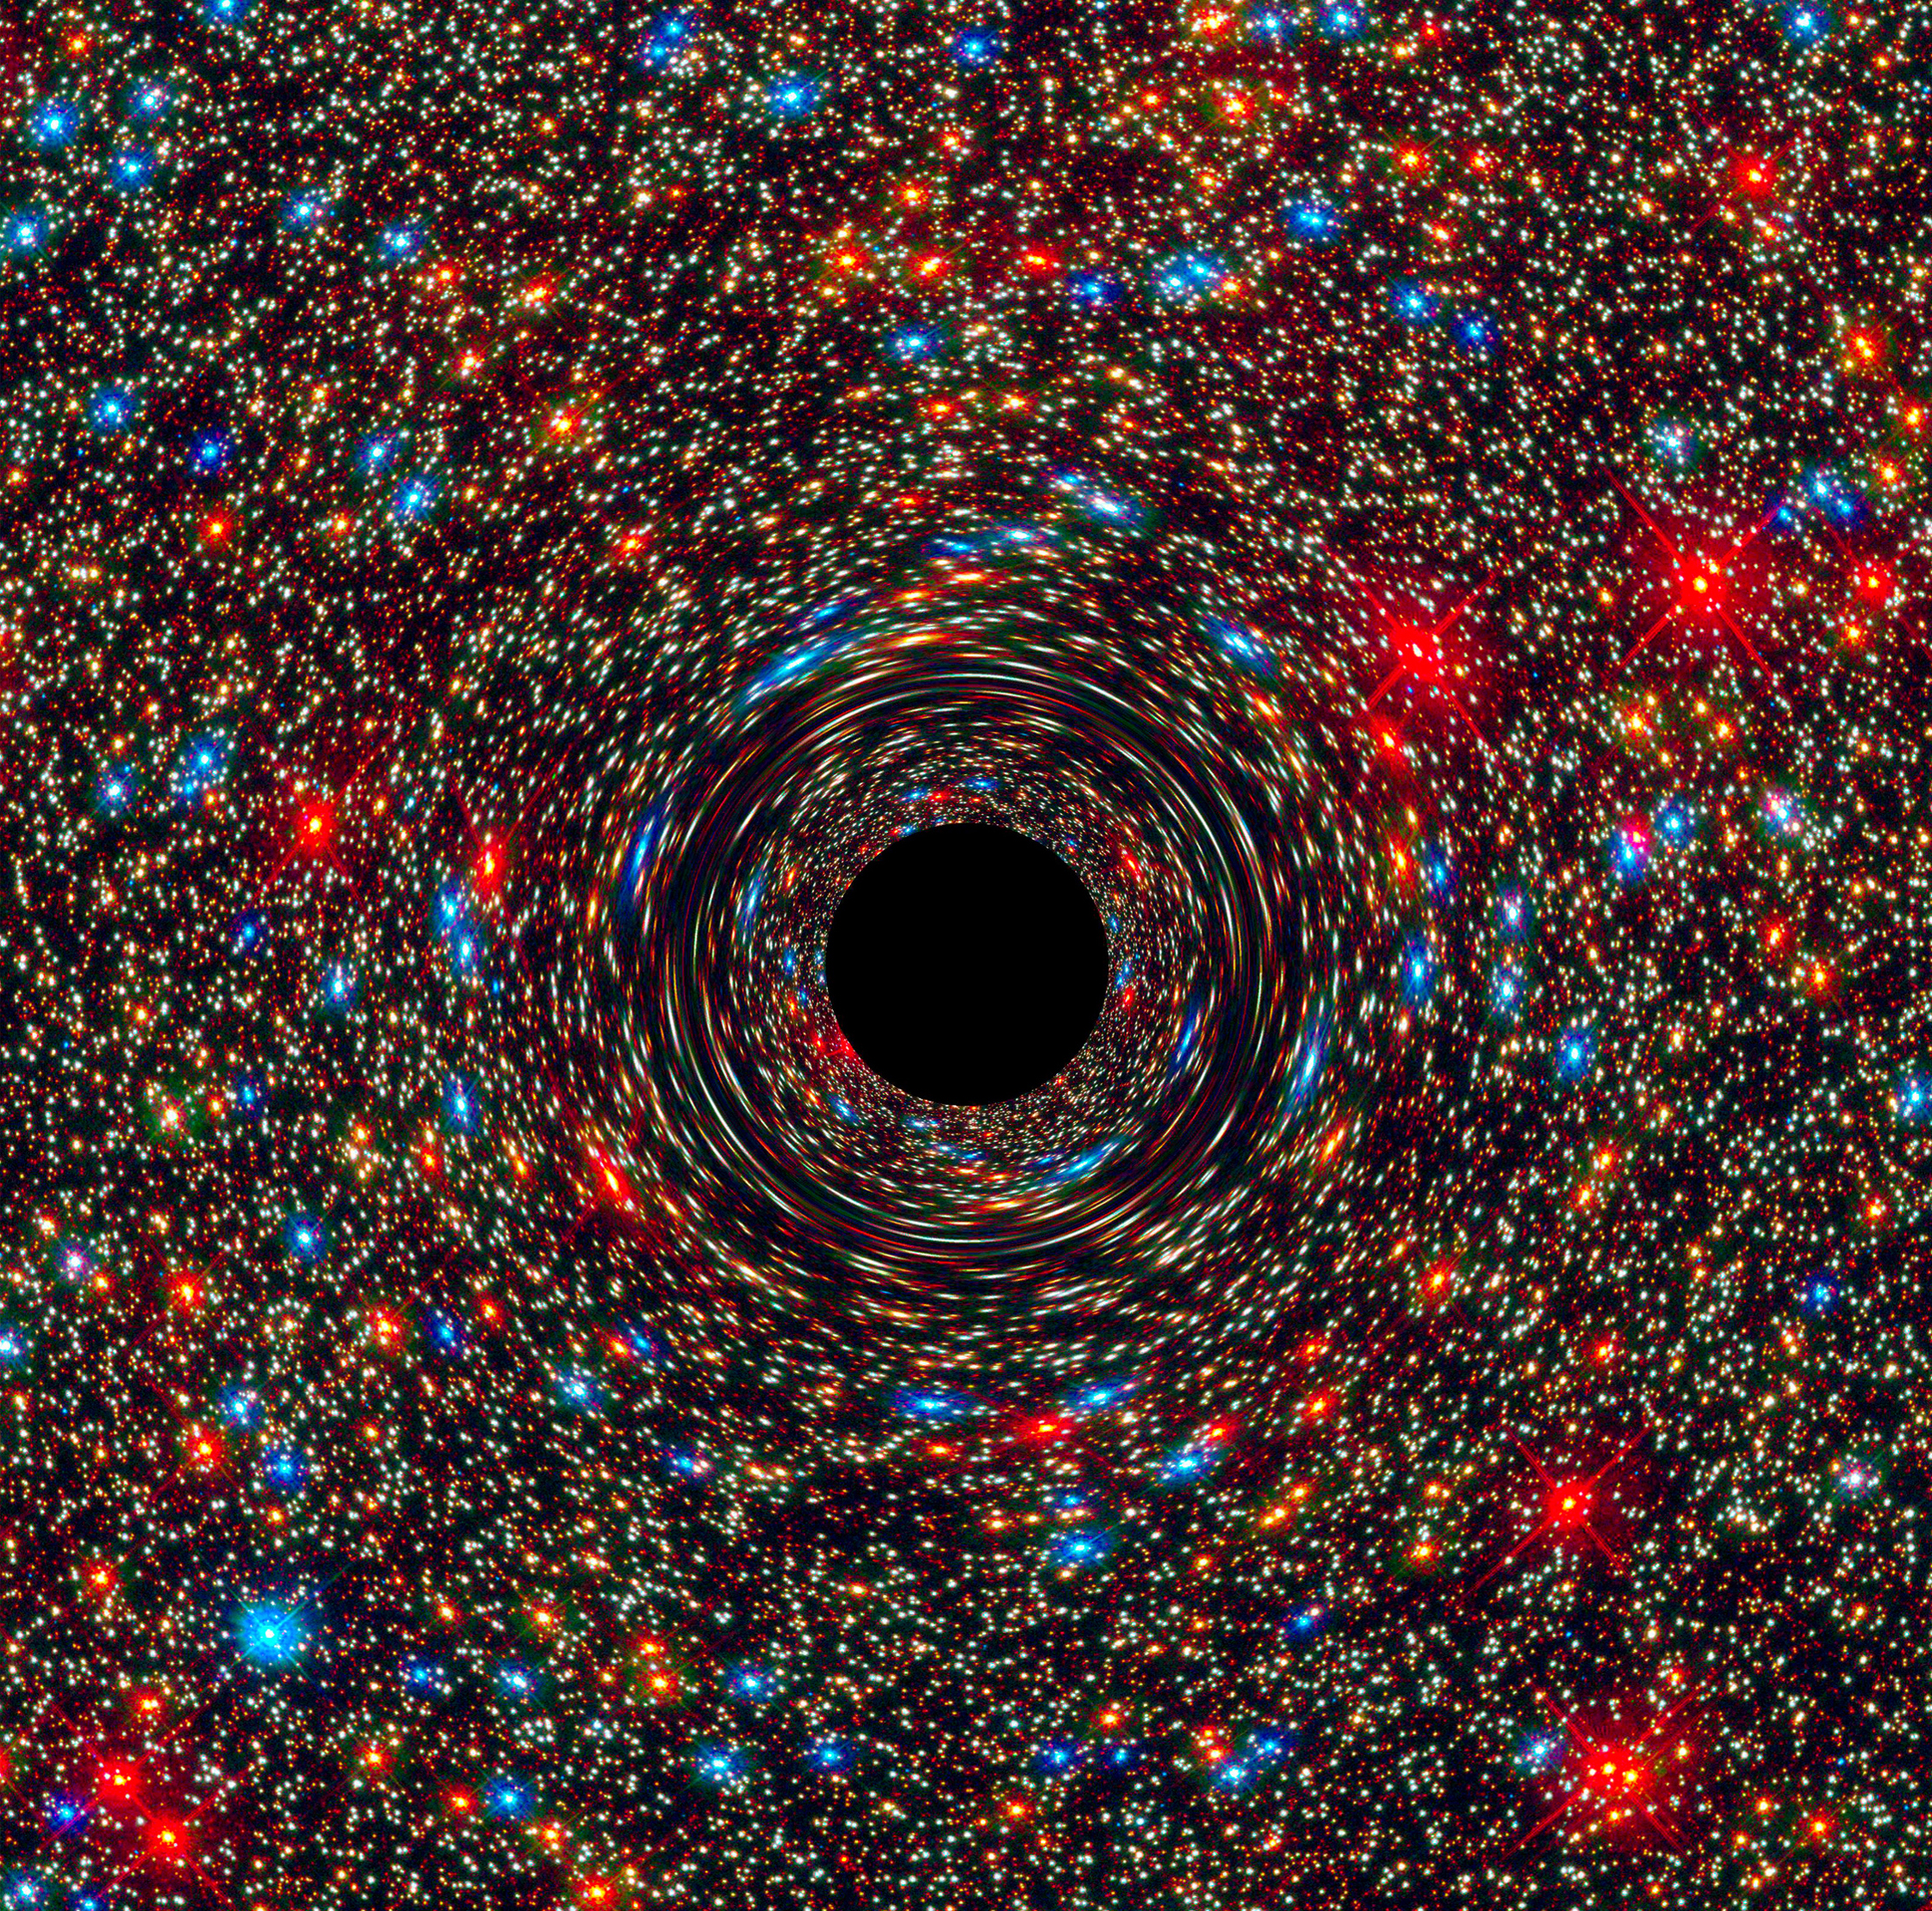 This computer-simulated image shows a supermassive black hole at the core of a galaxy. The black region in the center represents the black hole's event horizon, where no light can escape the massive object's gravitational grip. Image credit:    NASA, ESA, and D. Coe, J. Anderson, and R. van der Marel (STScI)